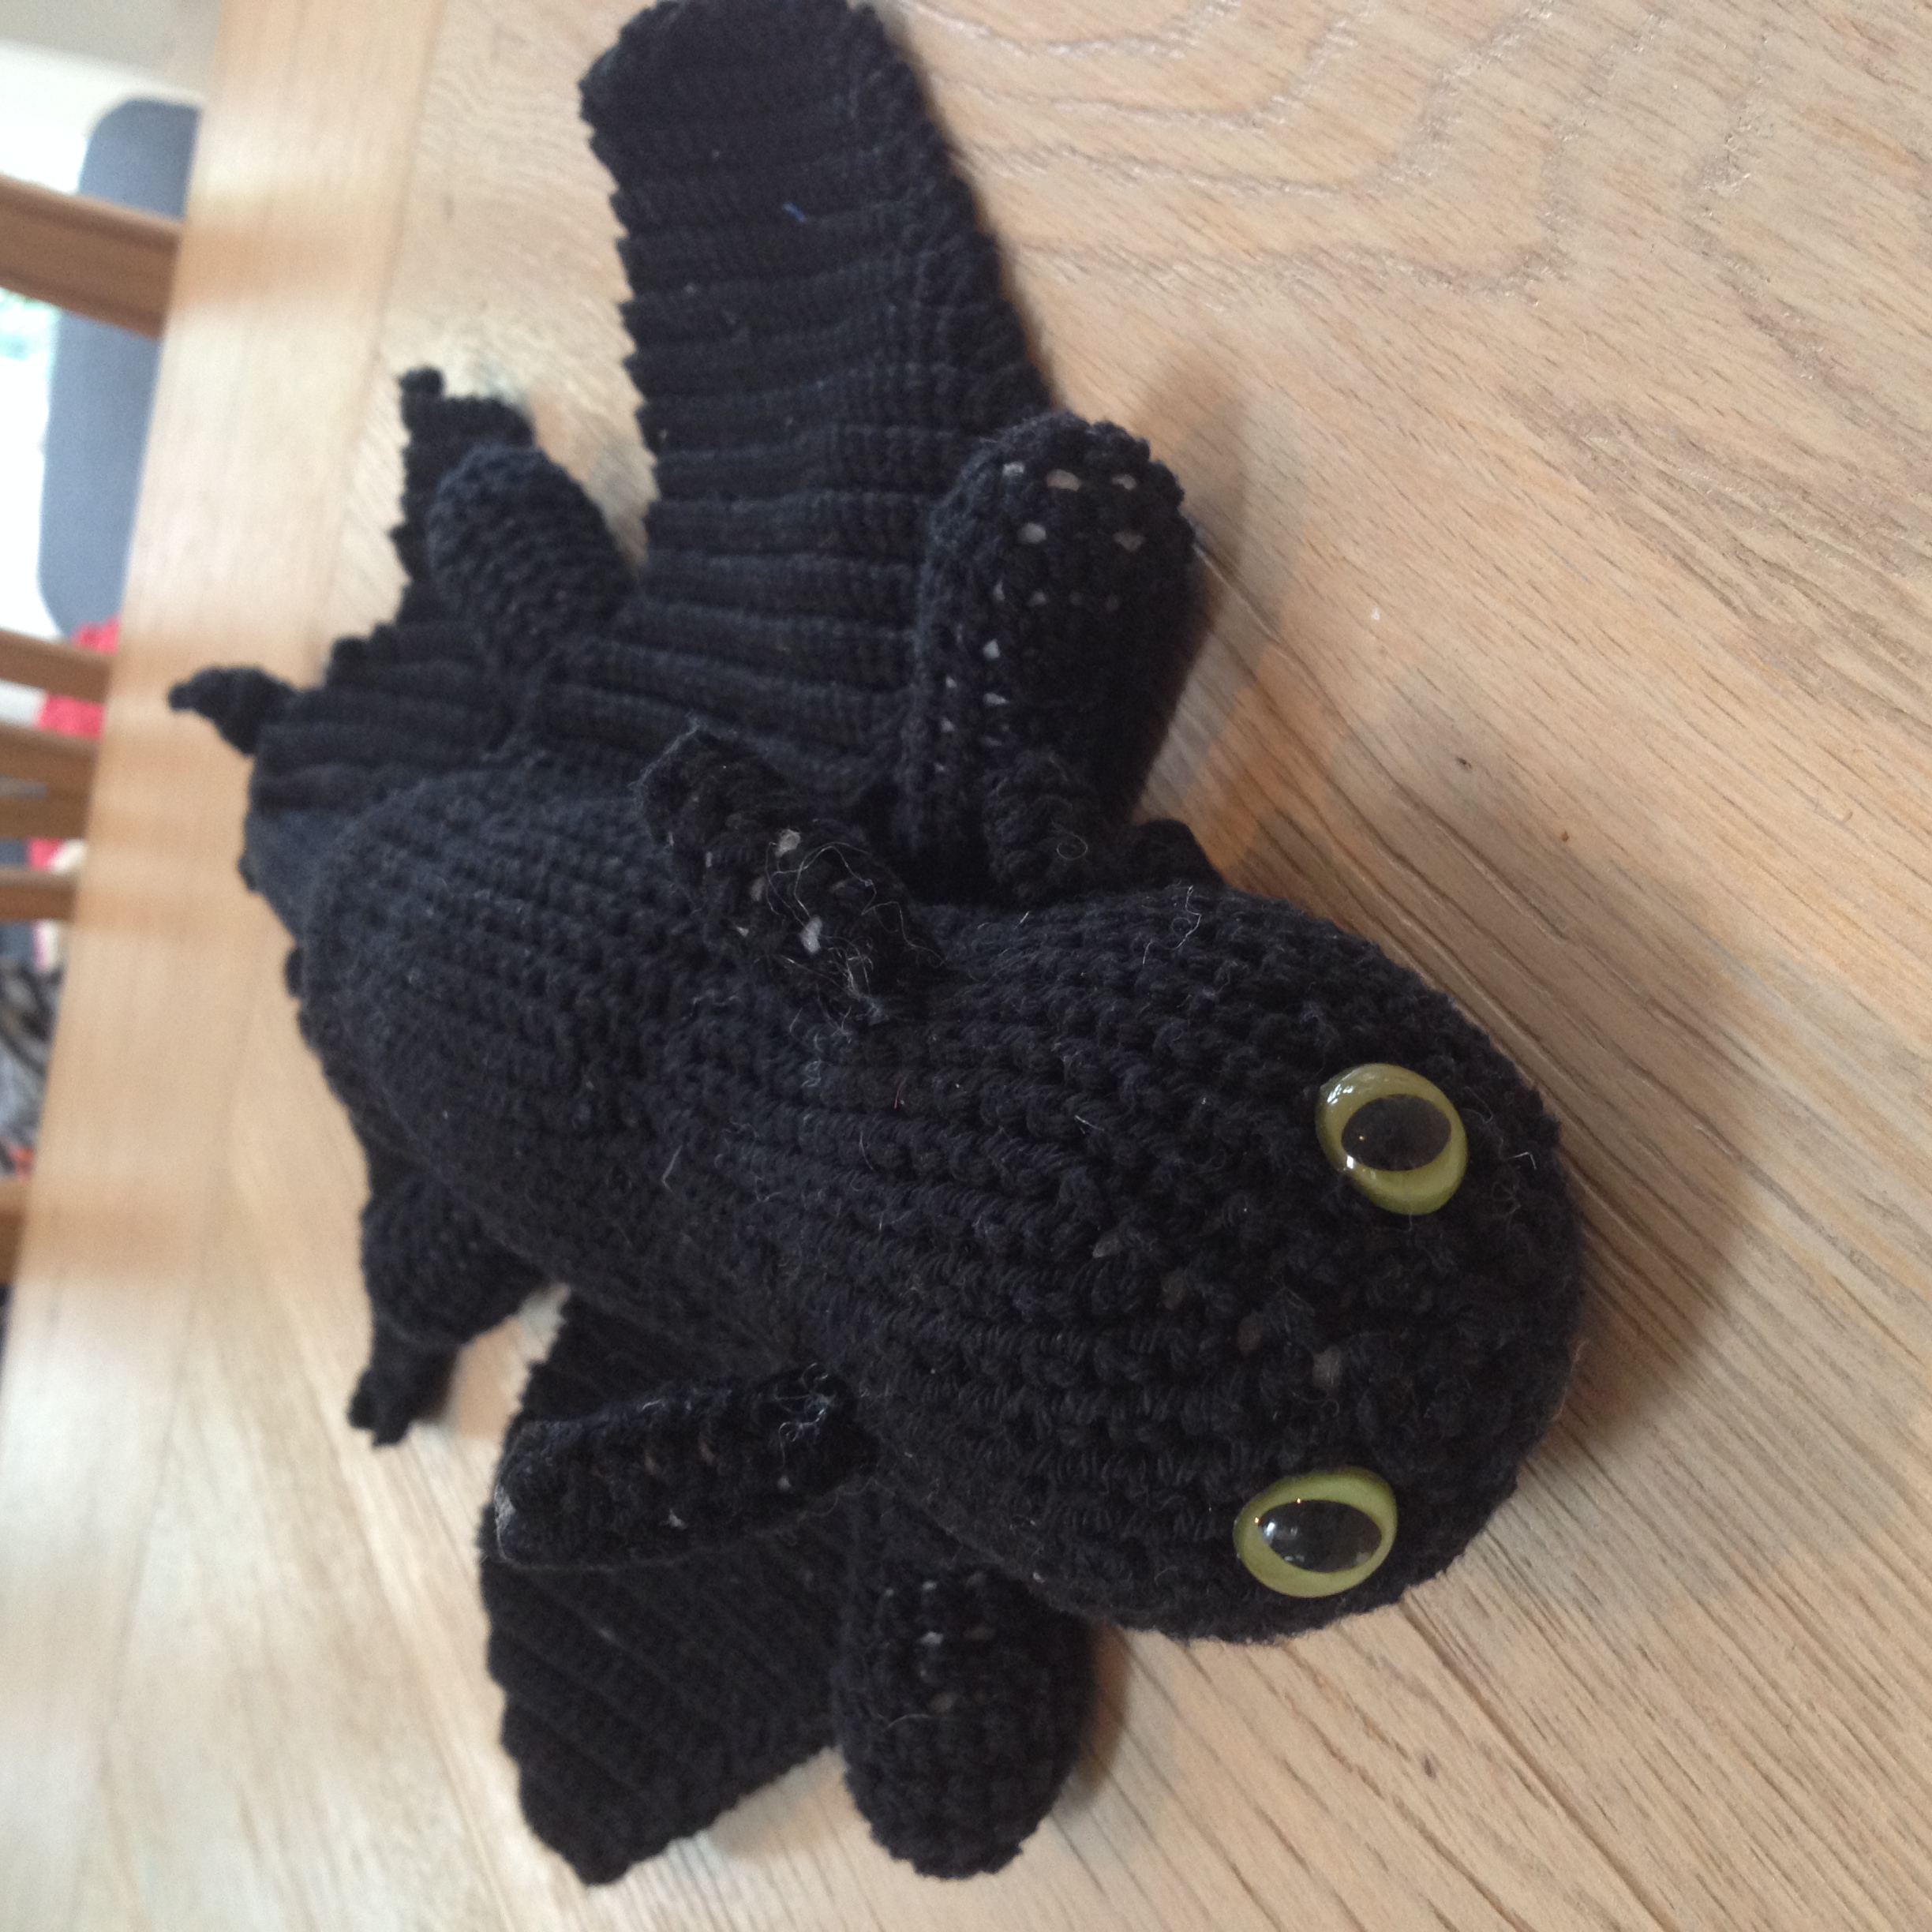 Toothless The Dragon Crochet On A Train